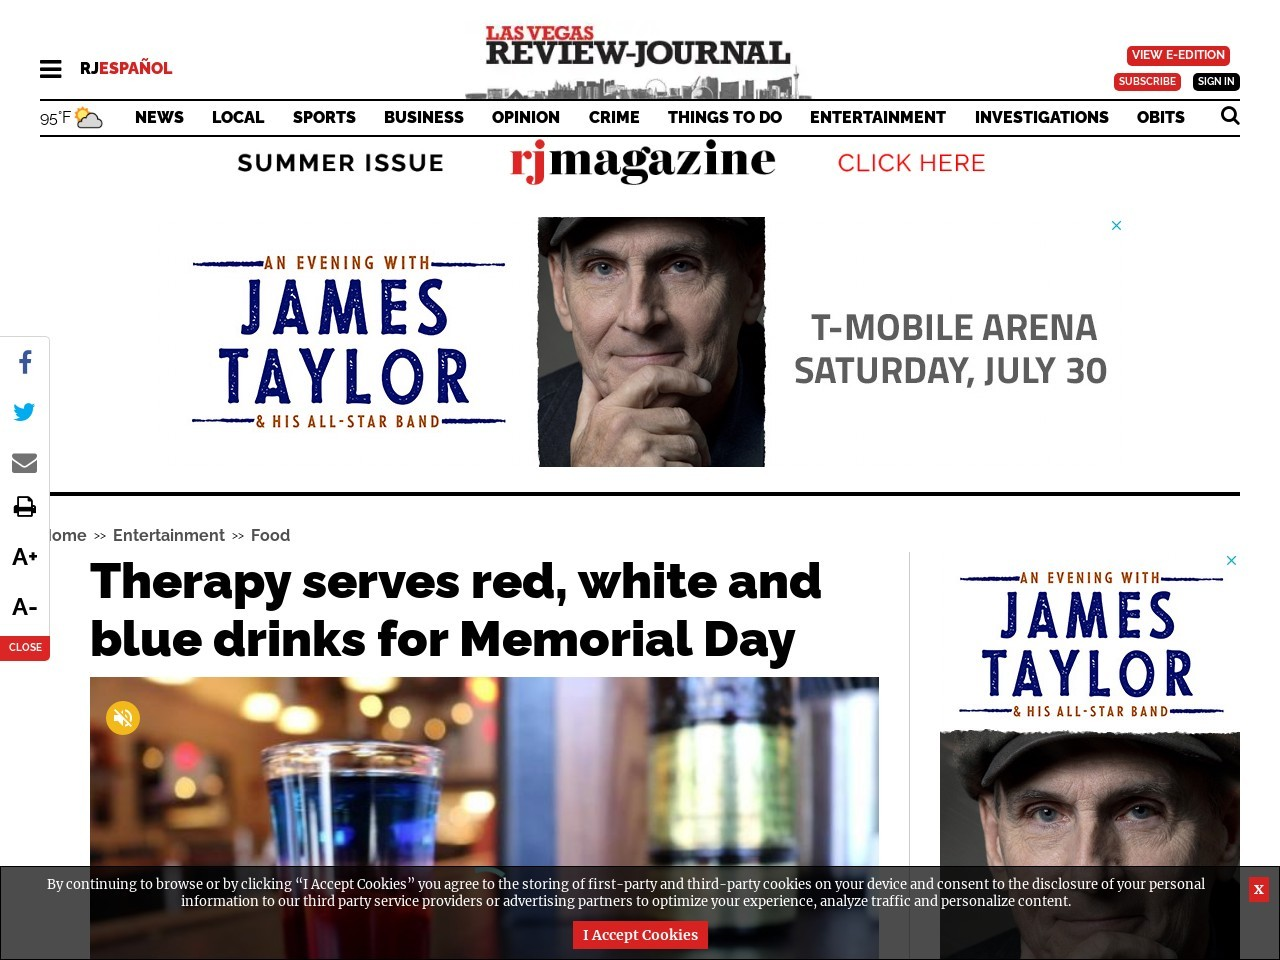 Therapy serves red, white and blue drinks for Memorial Day